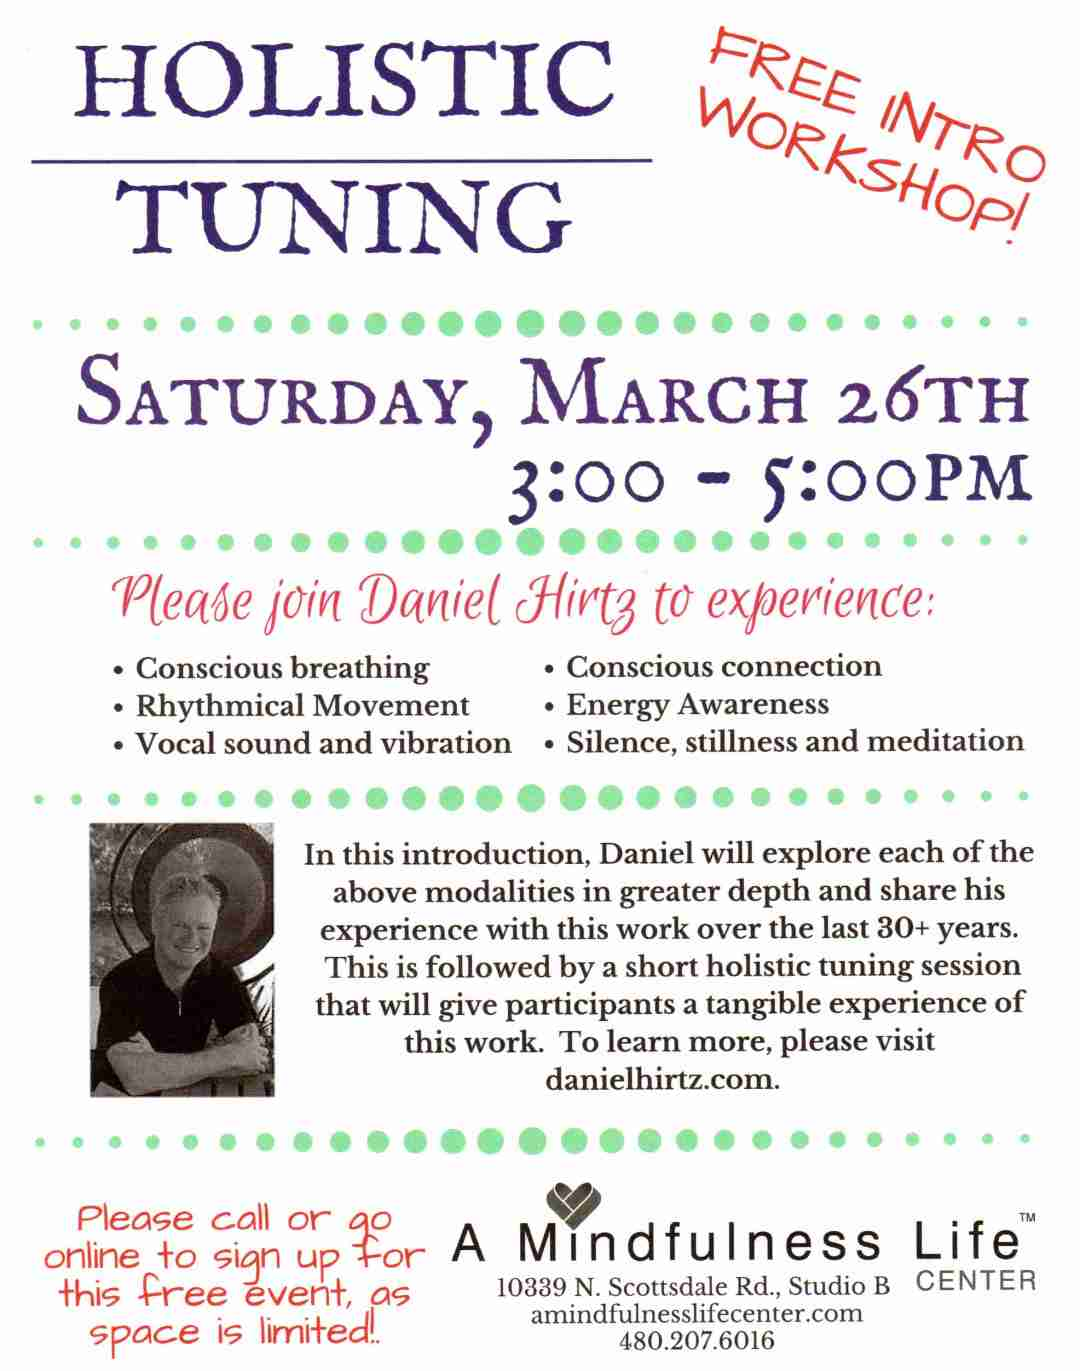 Holistic Tuning - Free Introduction Workshop